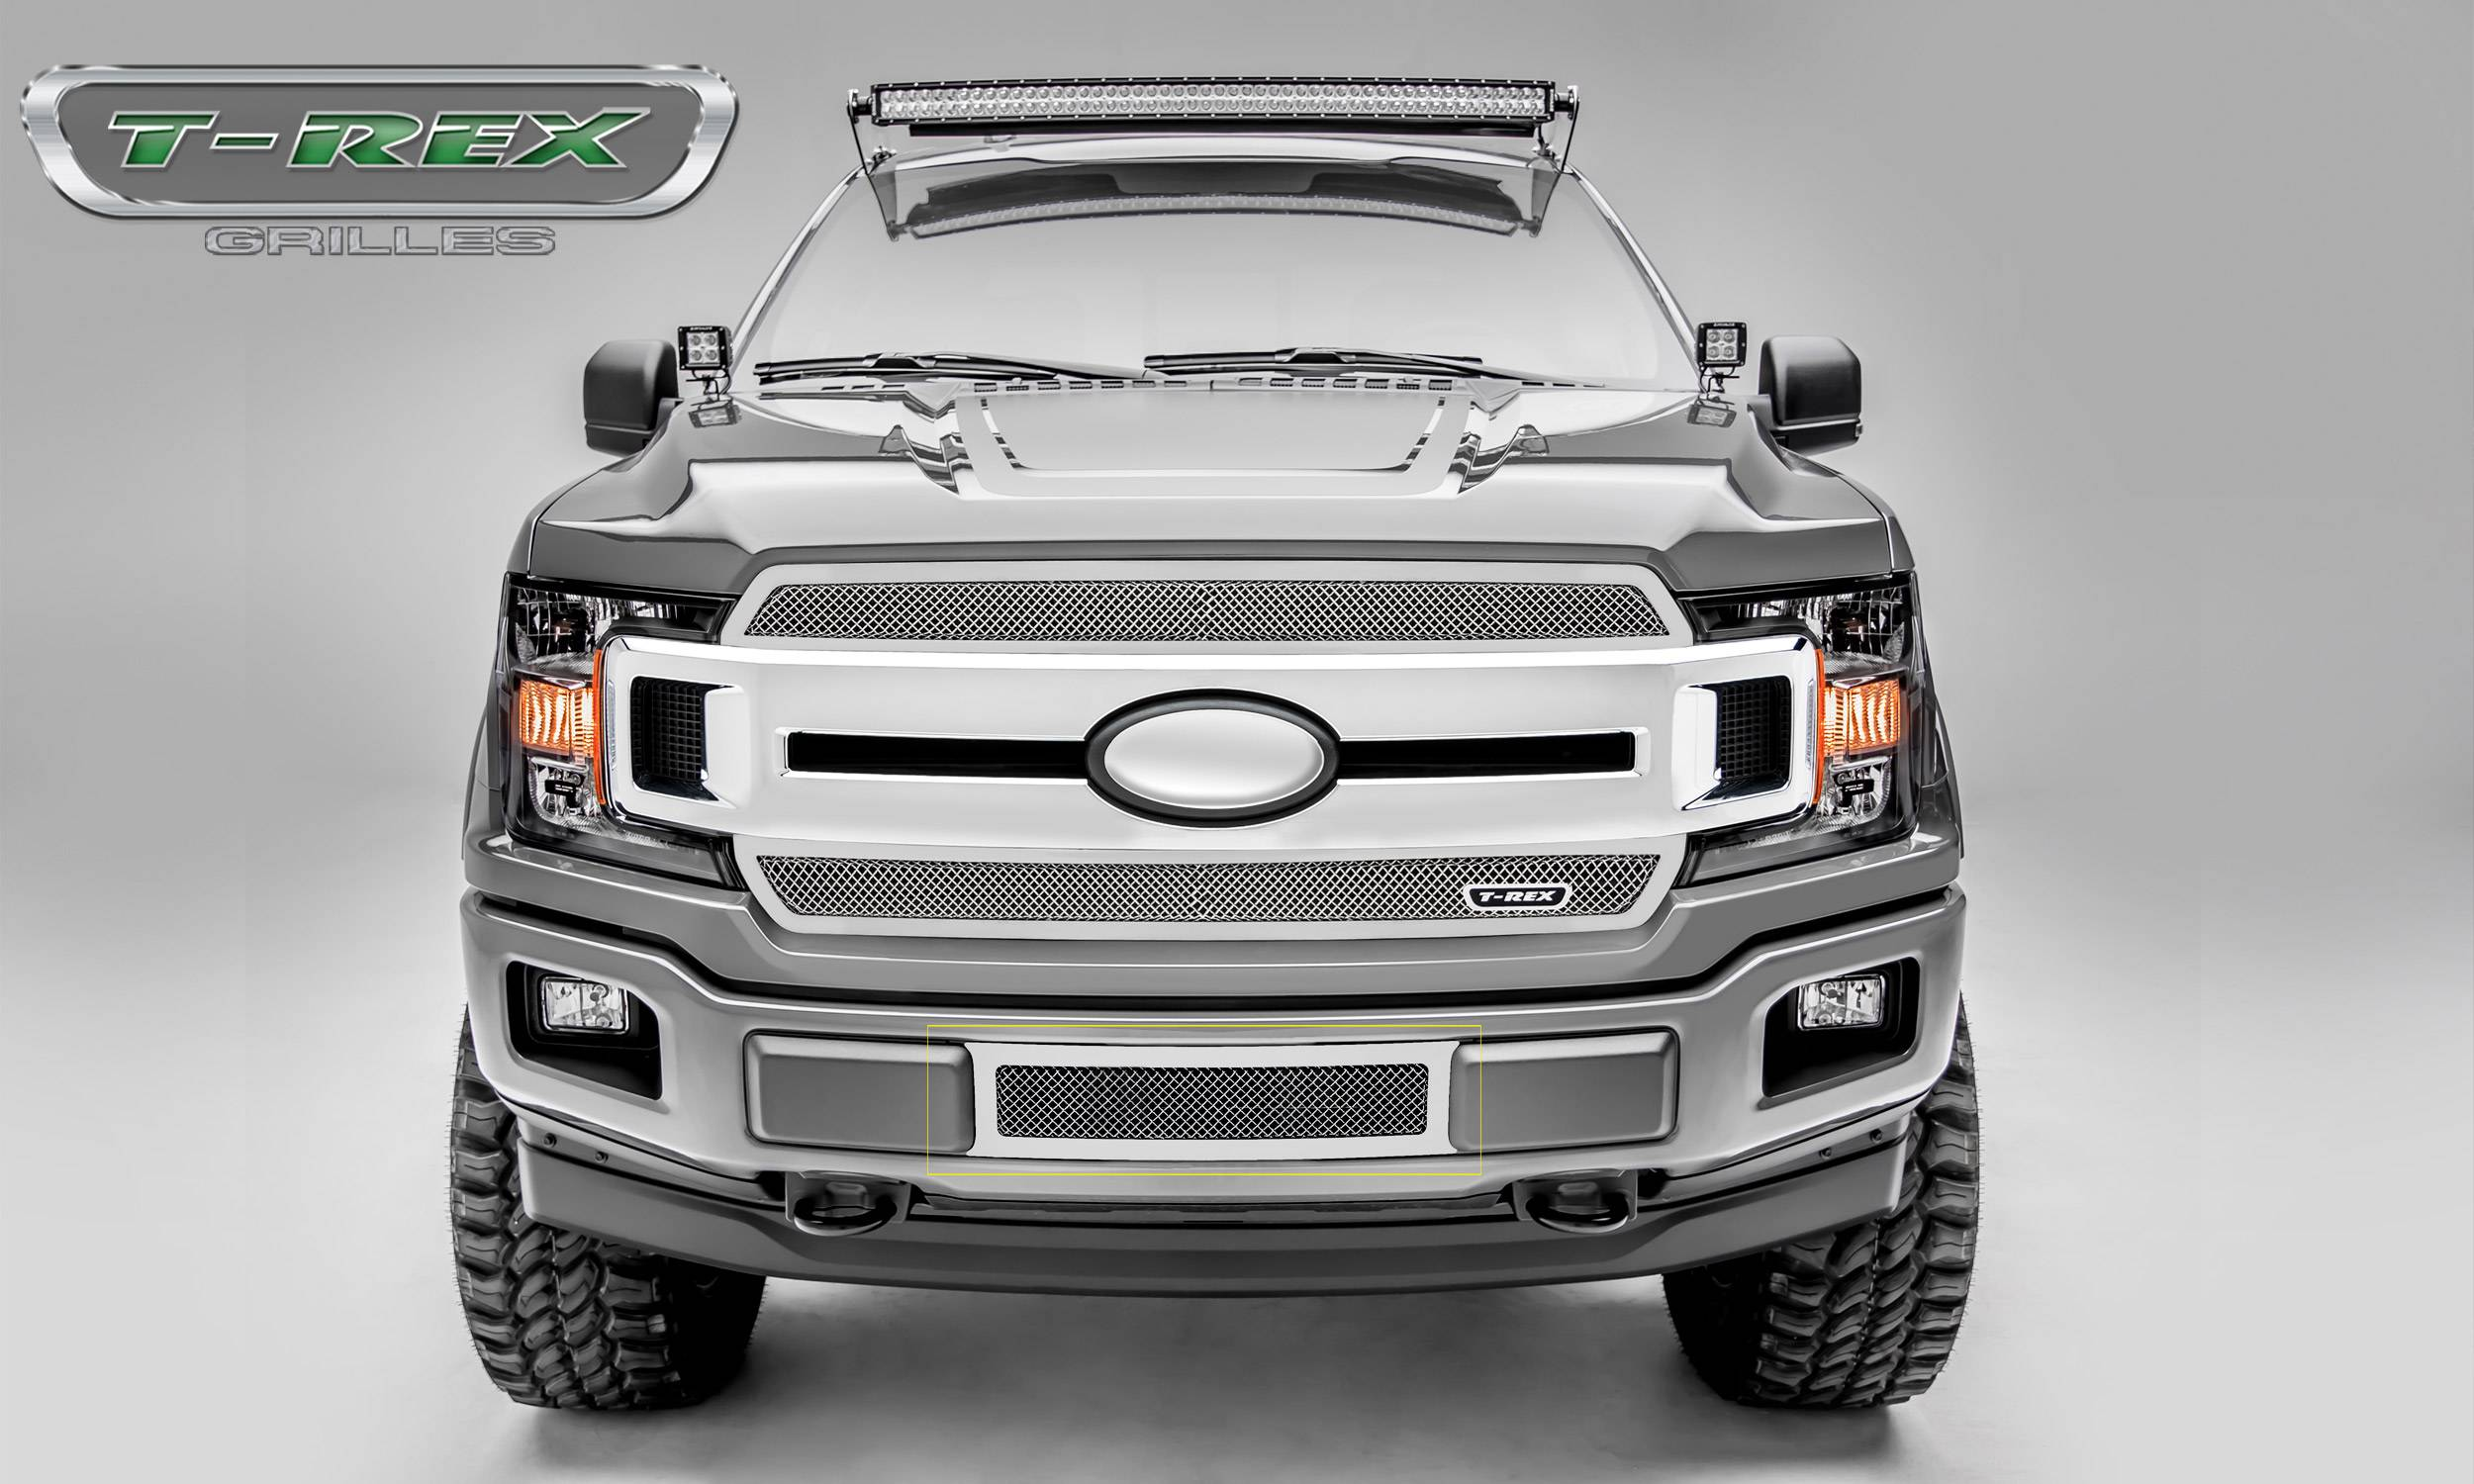 T-REX Ford F-150 - Upper Class Series - Bumper Grille Overlay with Framed Woven Wire Mesh and Polished Stainless Steel Finish - Pt # 55710